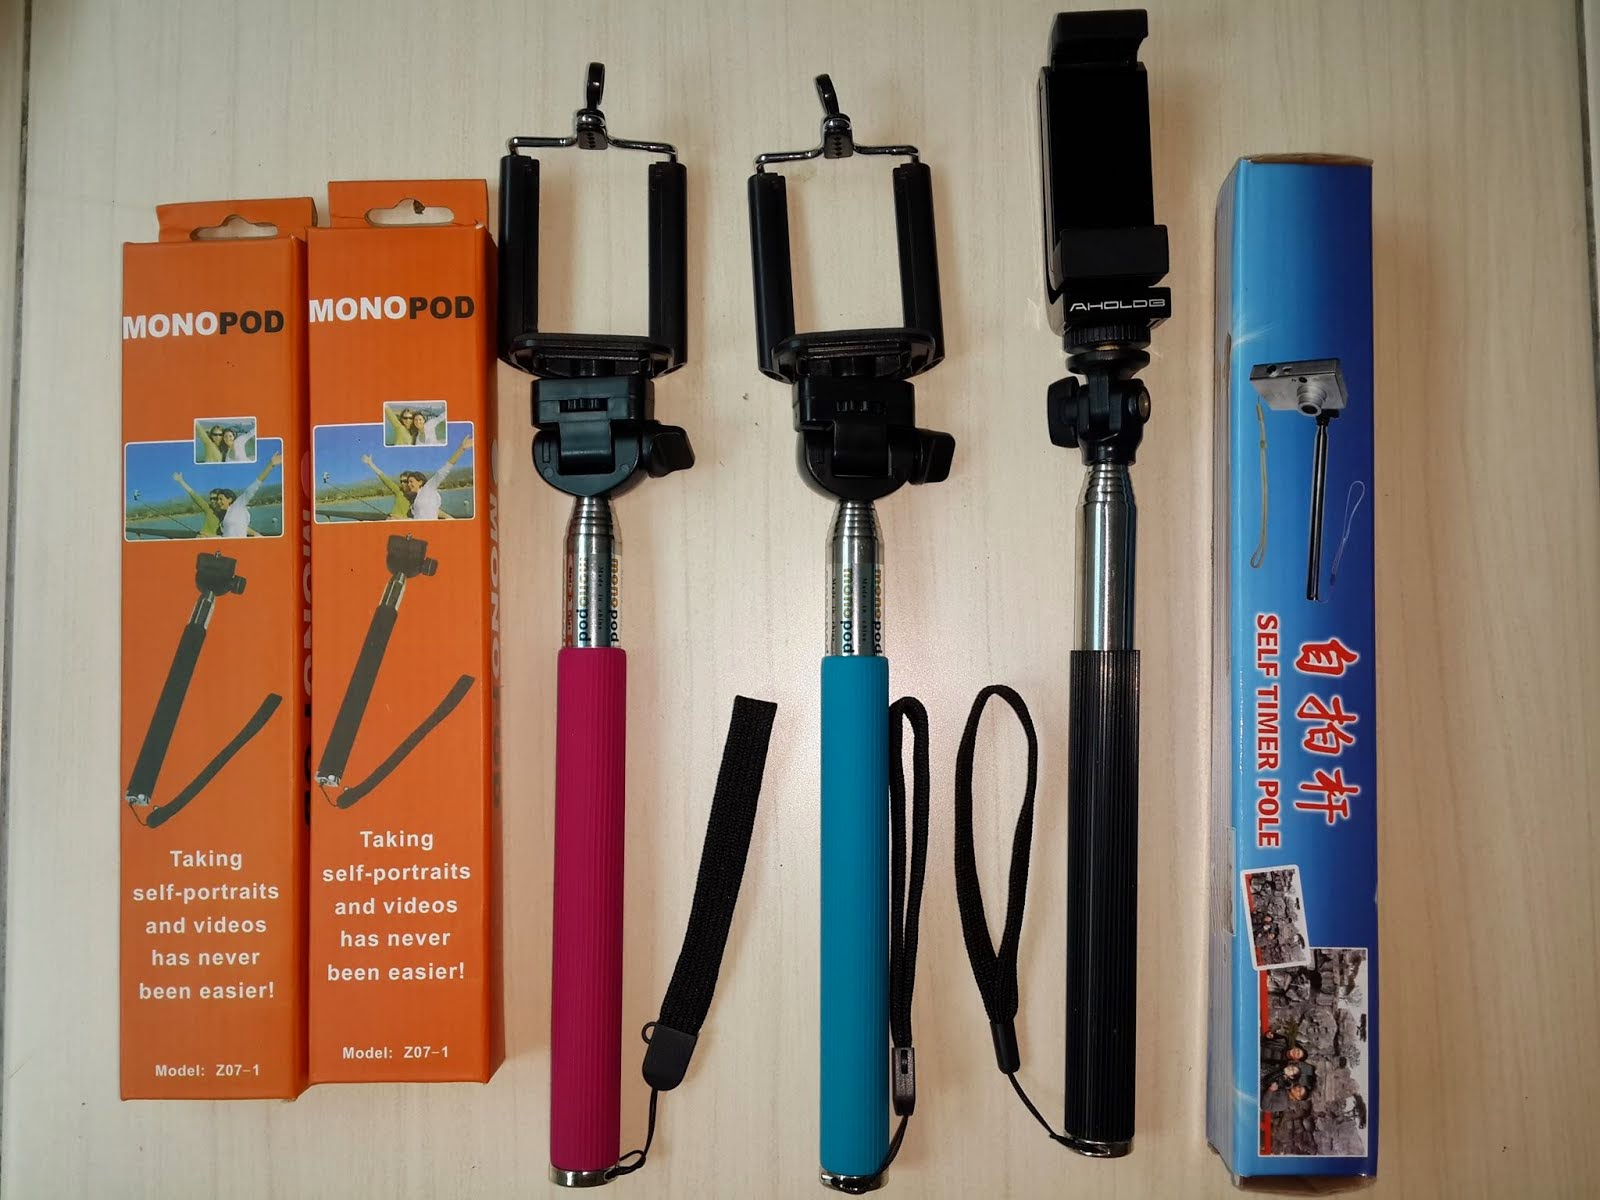 MONOPOD WITH PHONE HOLDER